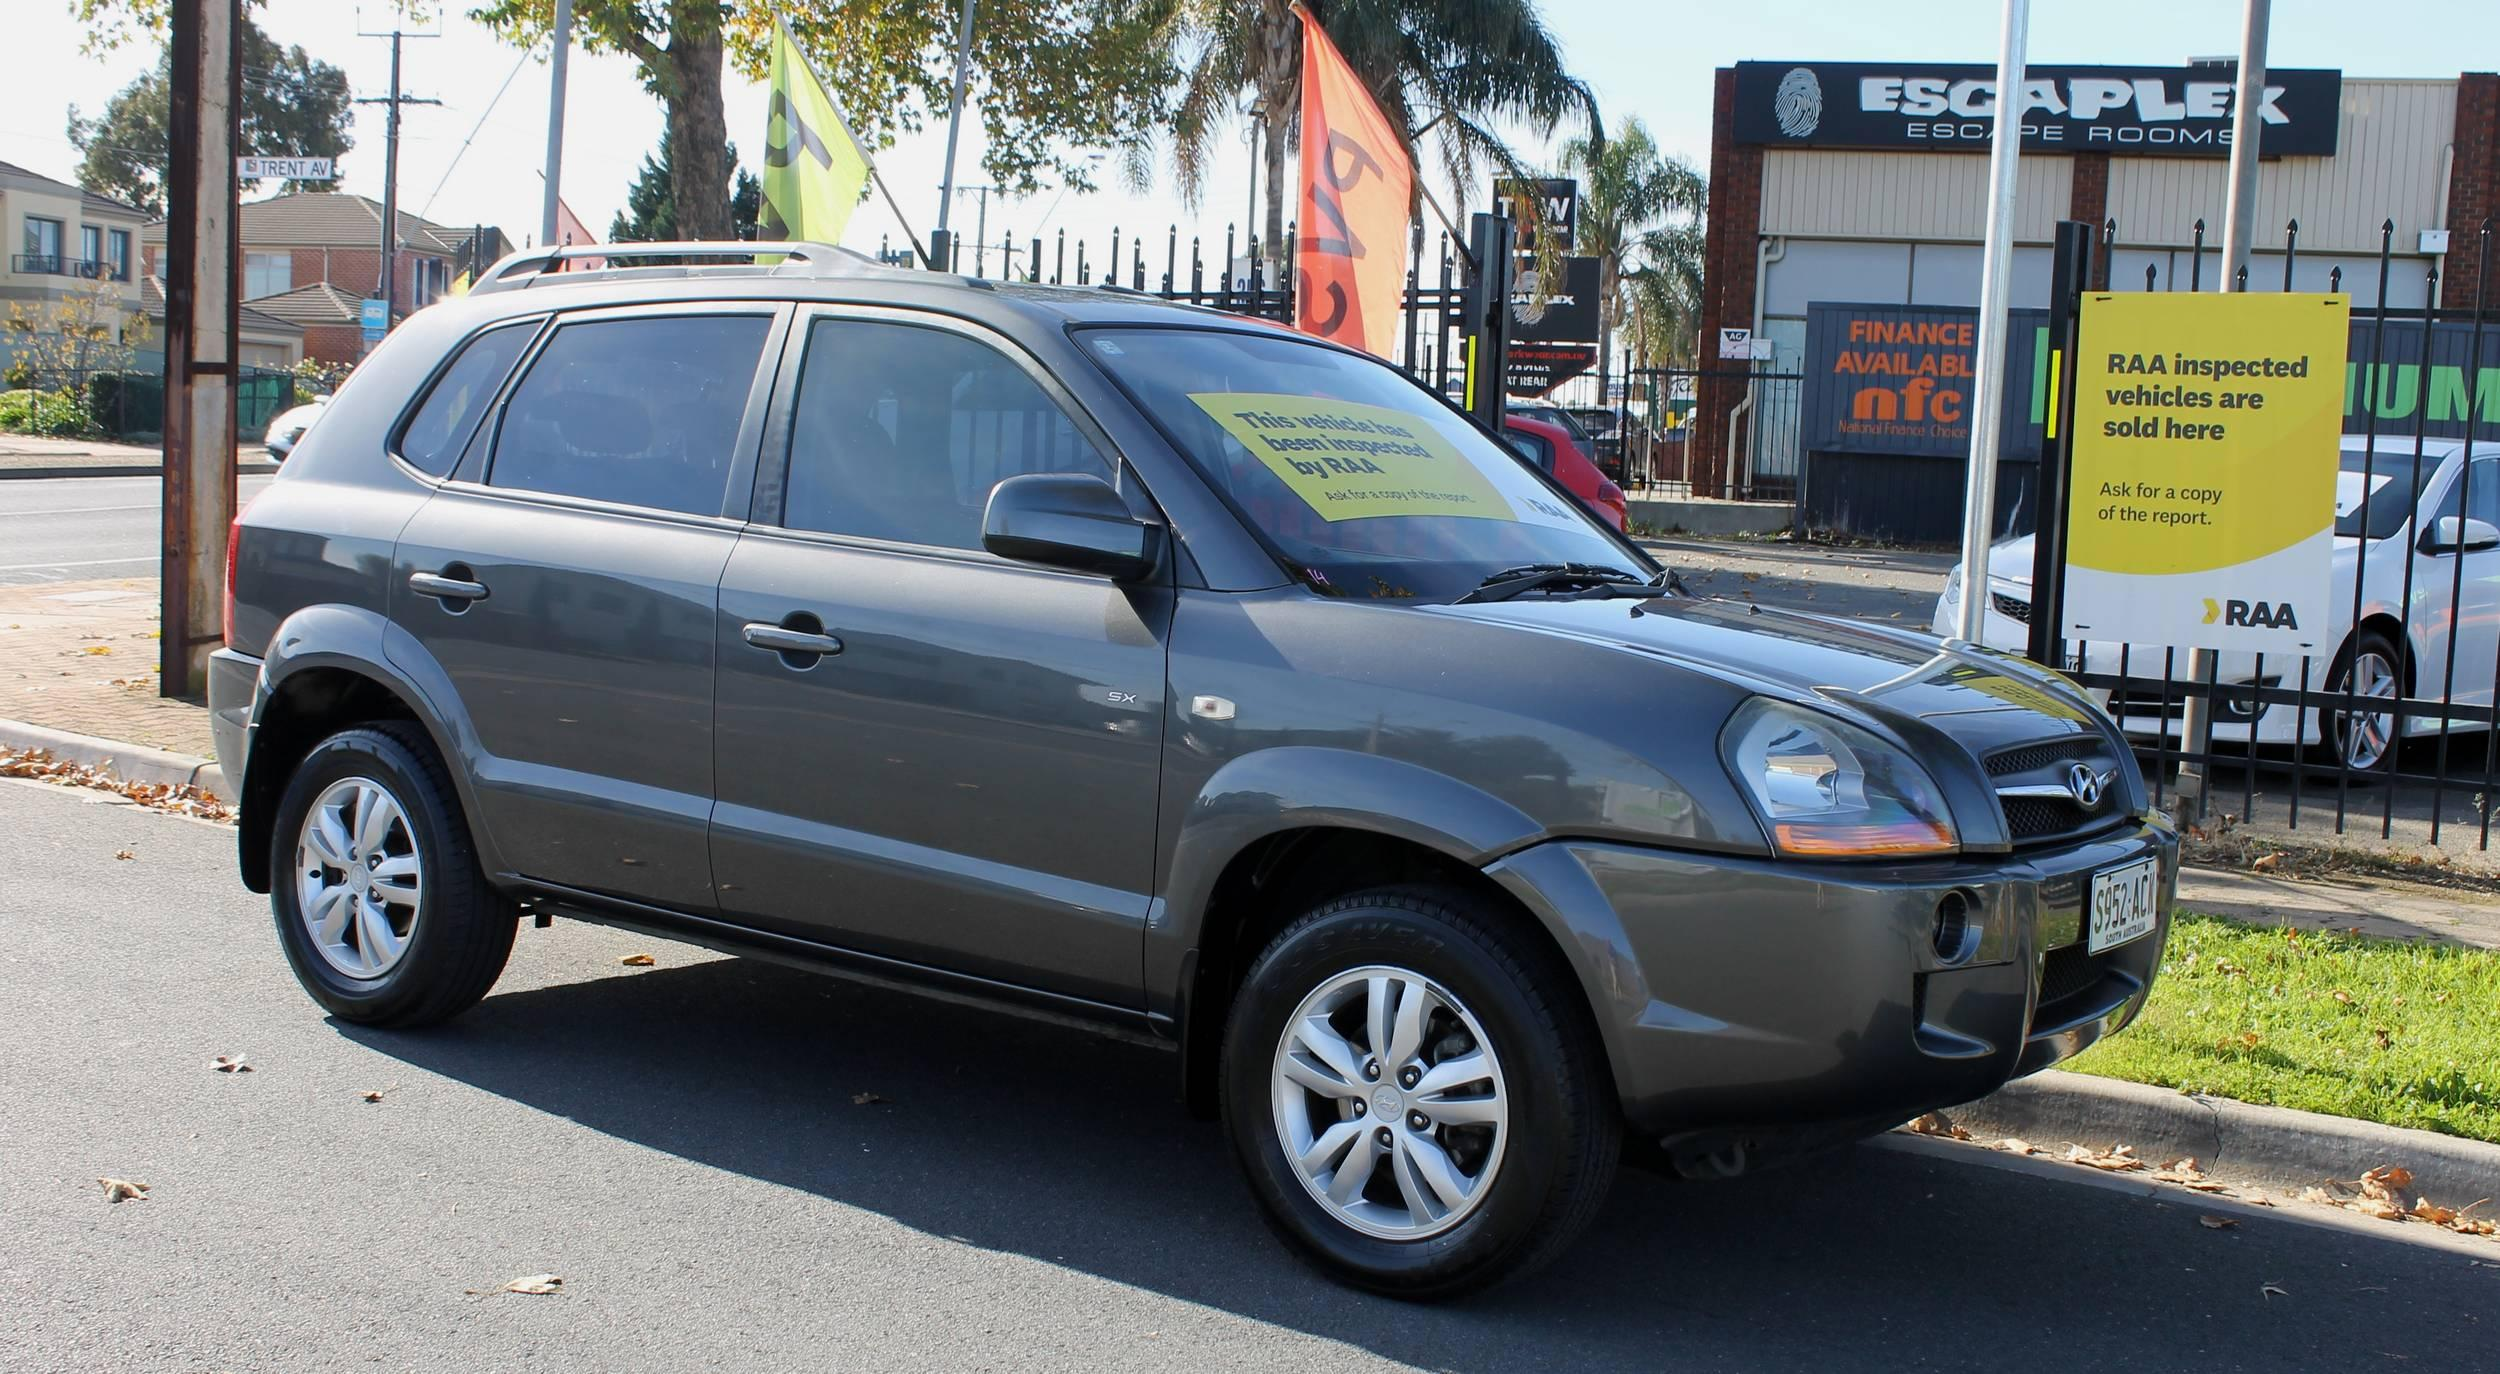 2009 Hyundai Tucson 08 UPGRADE CITY SX